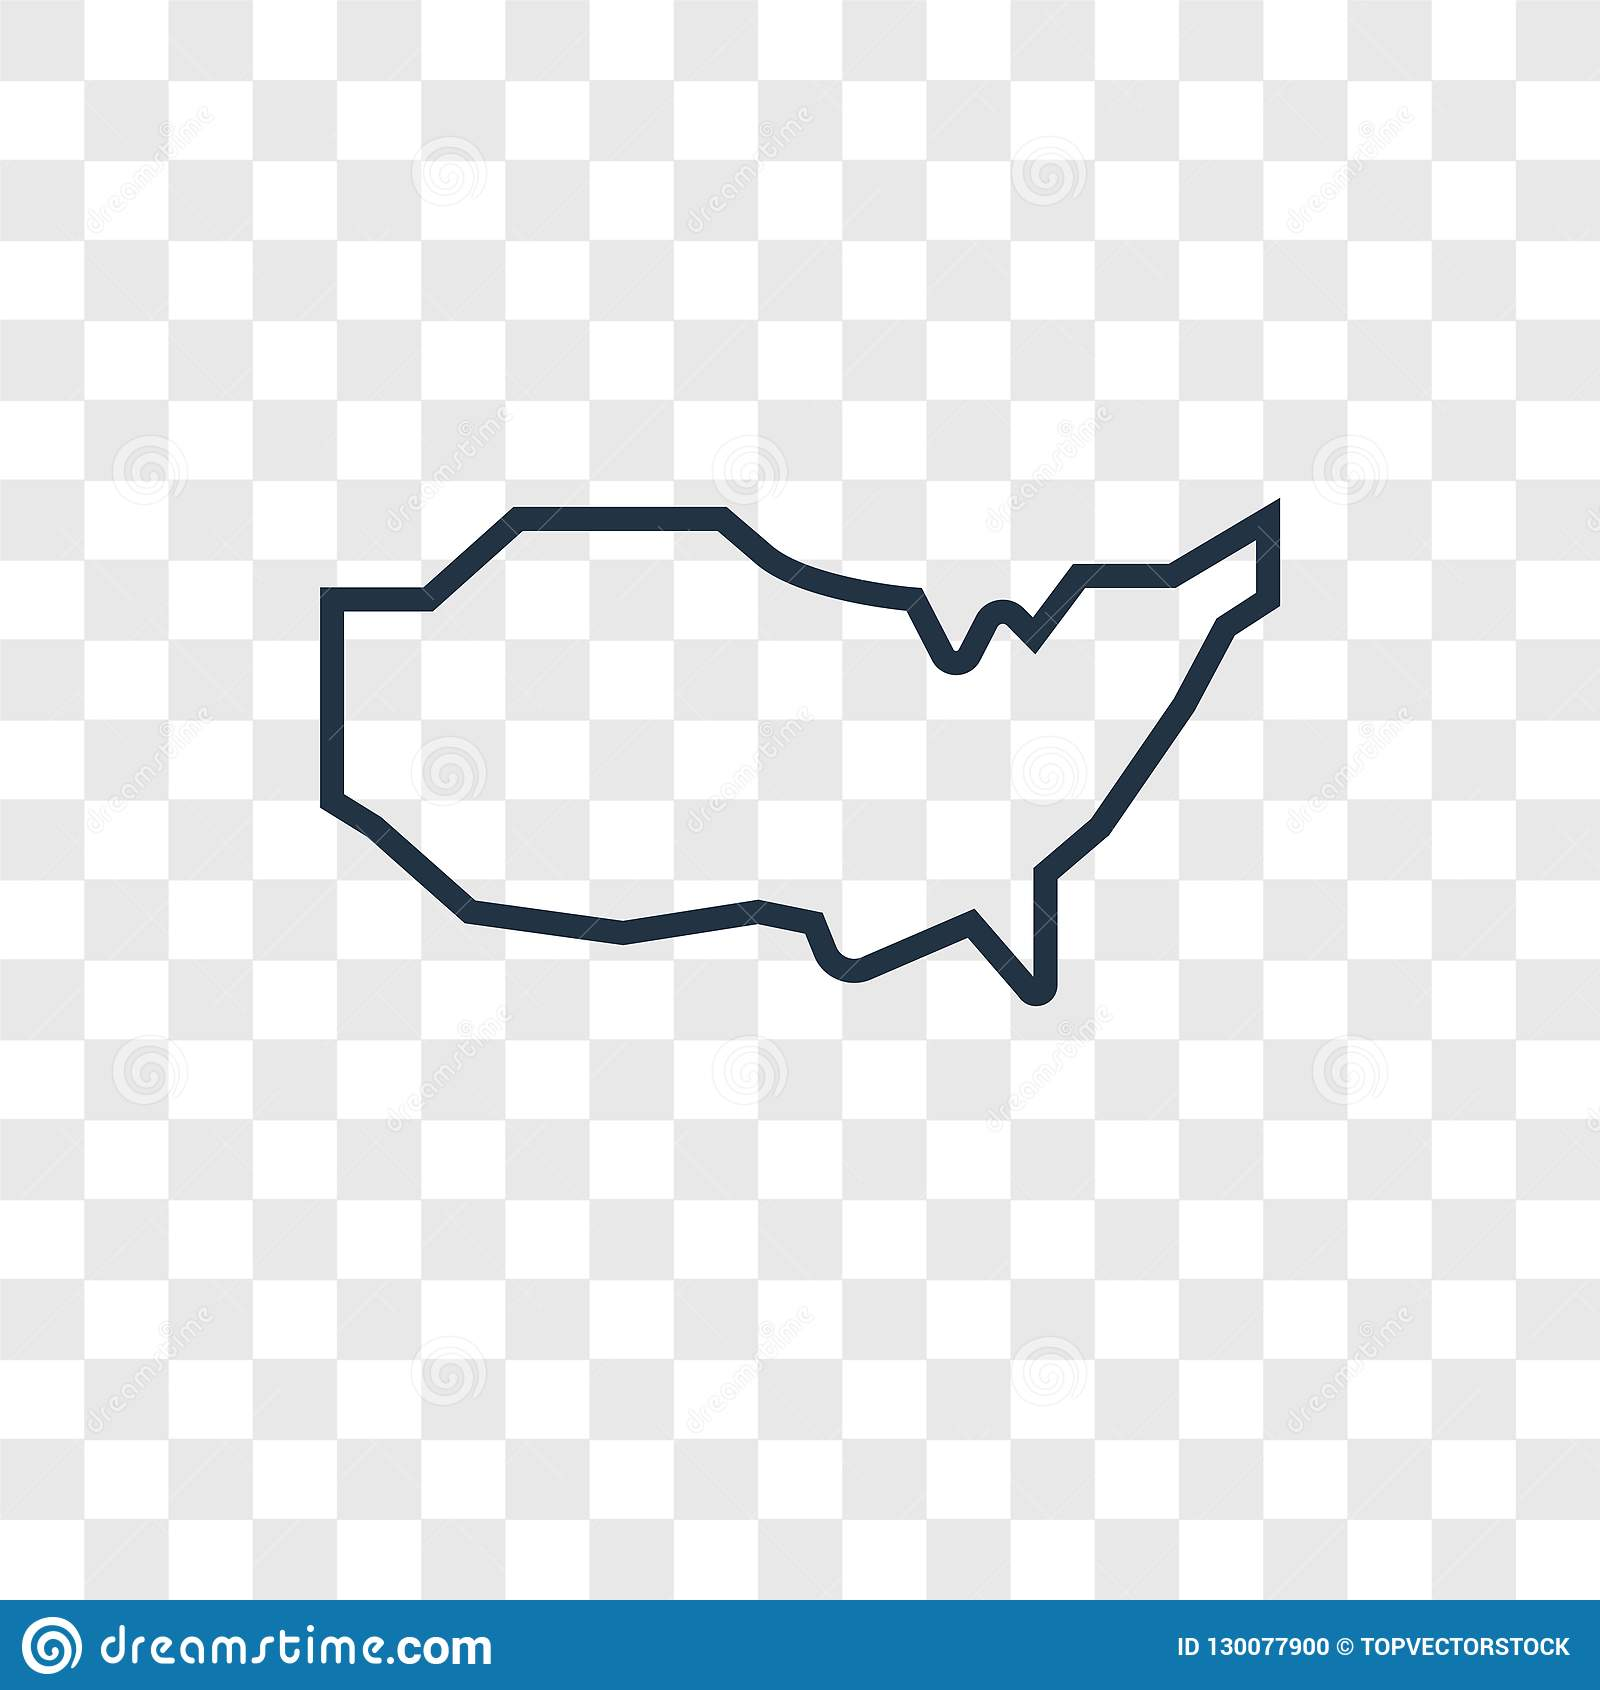 Us Map Concept Vector Linear Icon Isolated On Transparent - Us-map-transparent-background